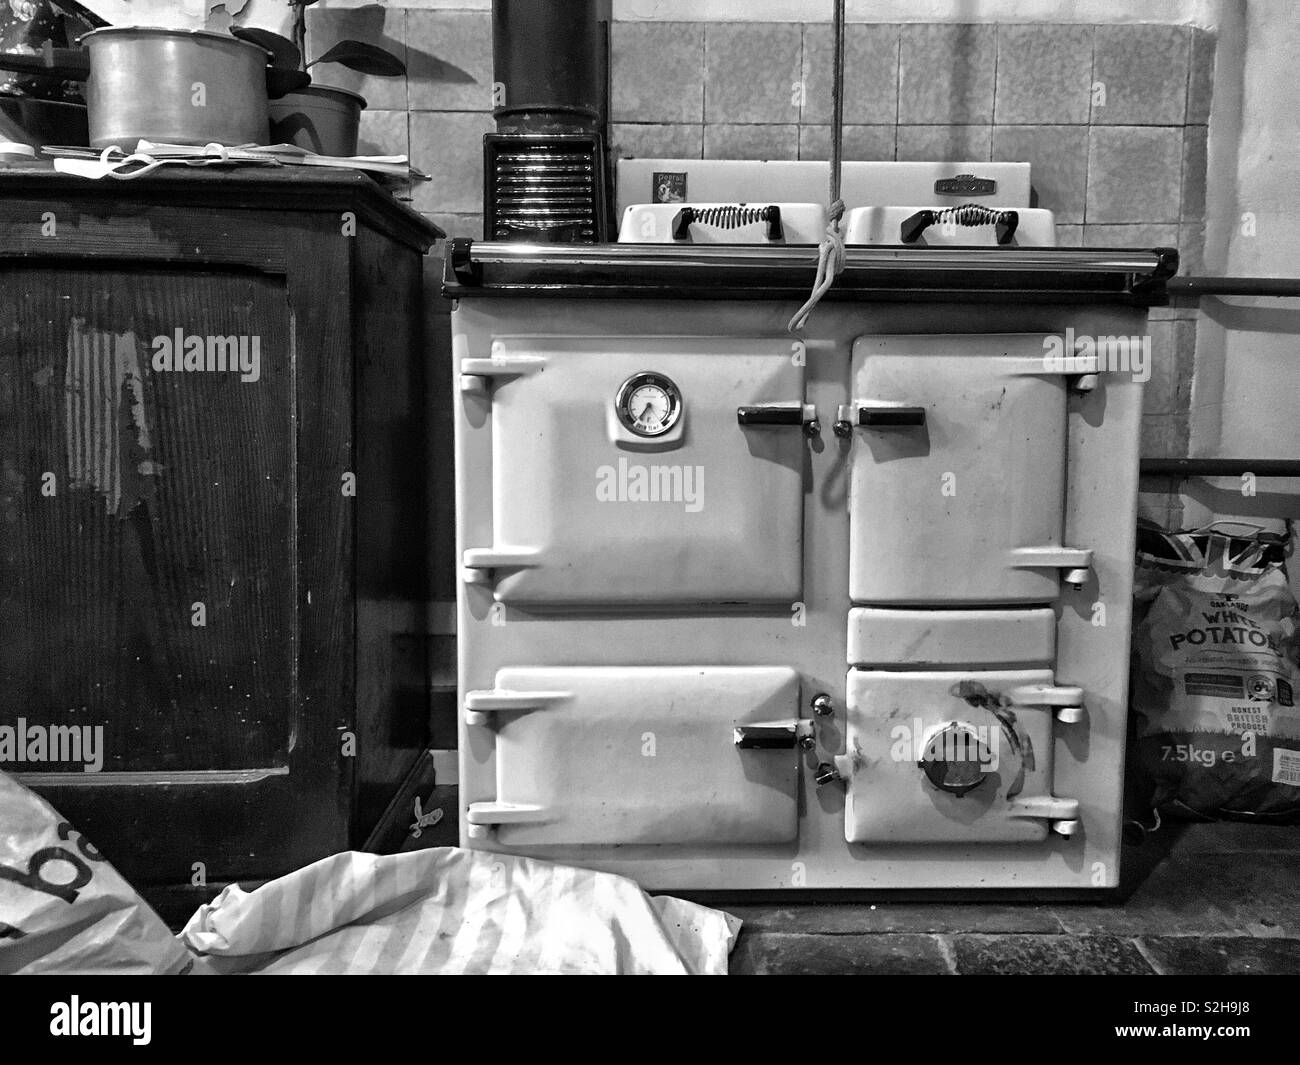 Range cooker in a farmhouse kitchen - Stock Image